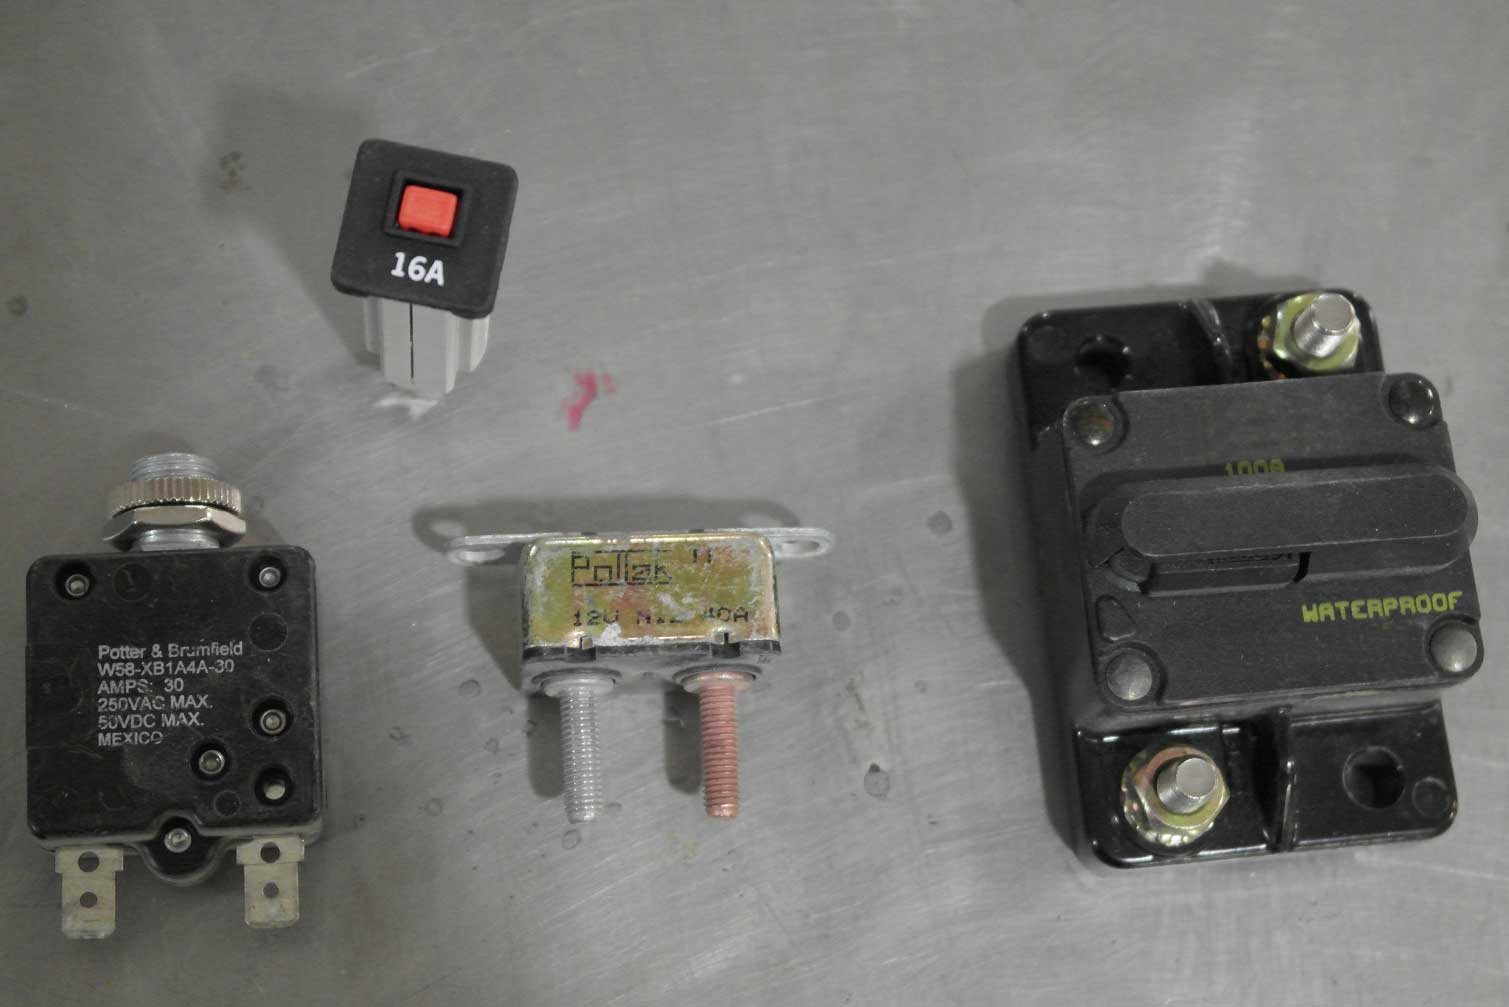 These re-settable breakers are useful for many applications.